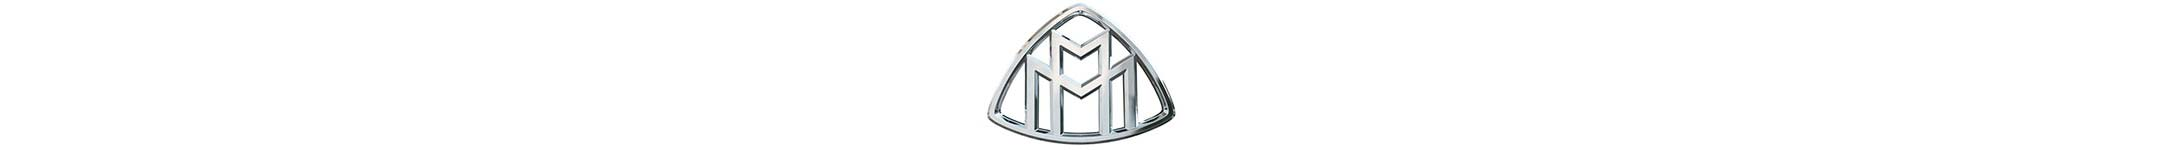 MERCEDES-MAYBACH LOGO